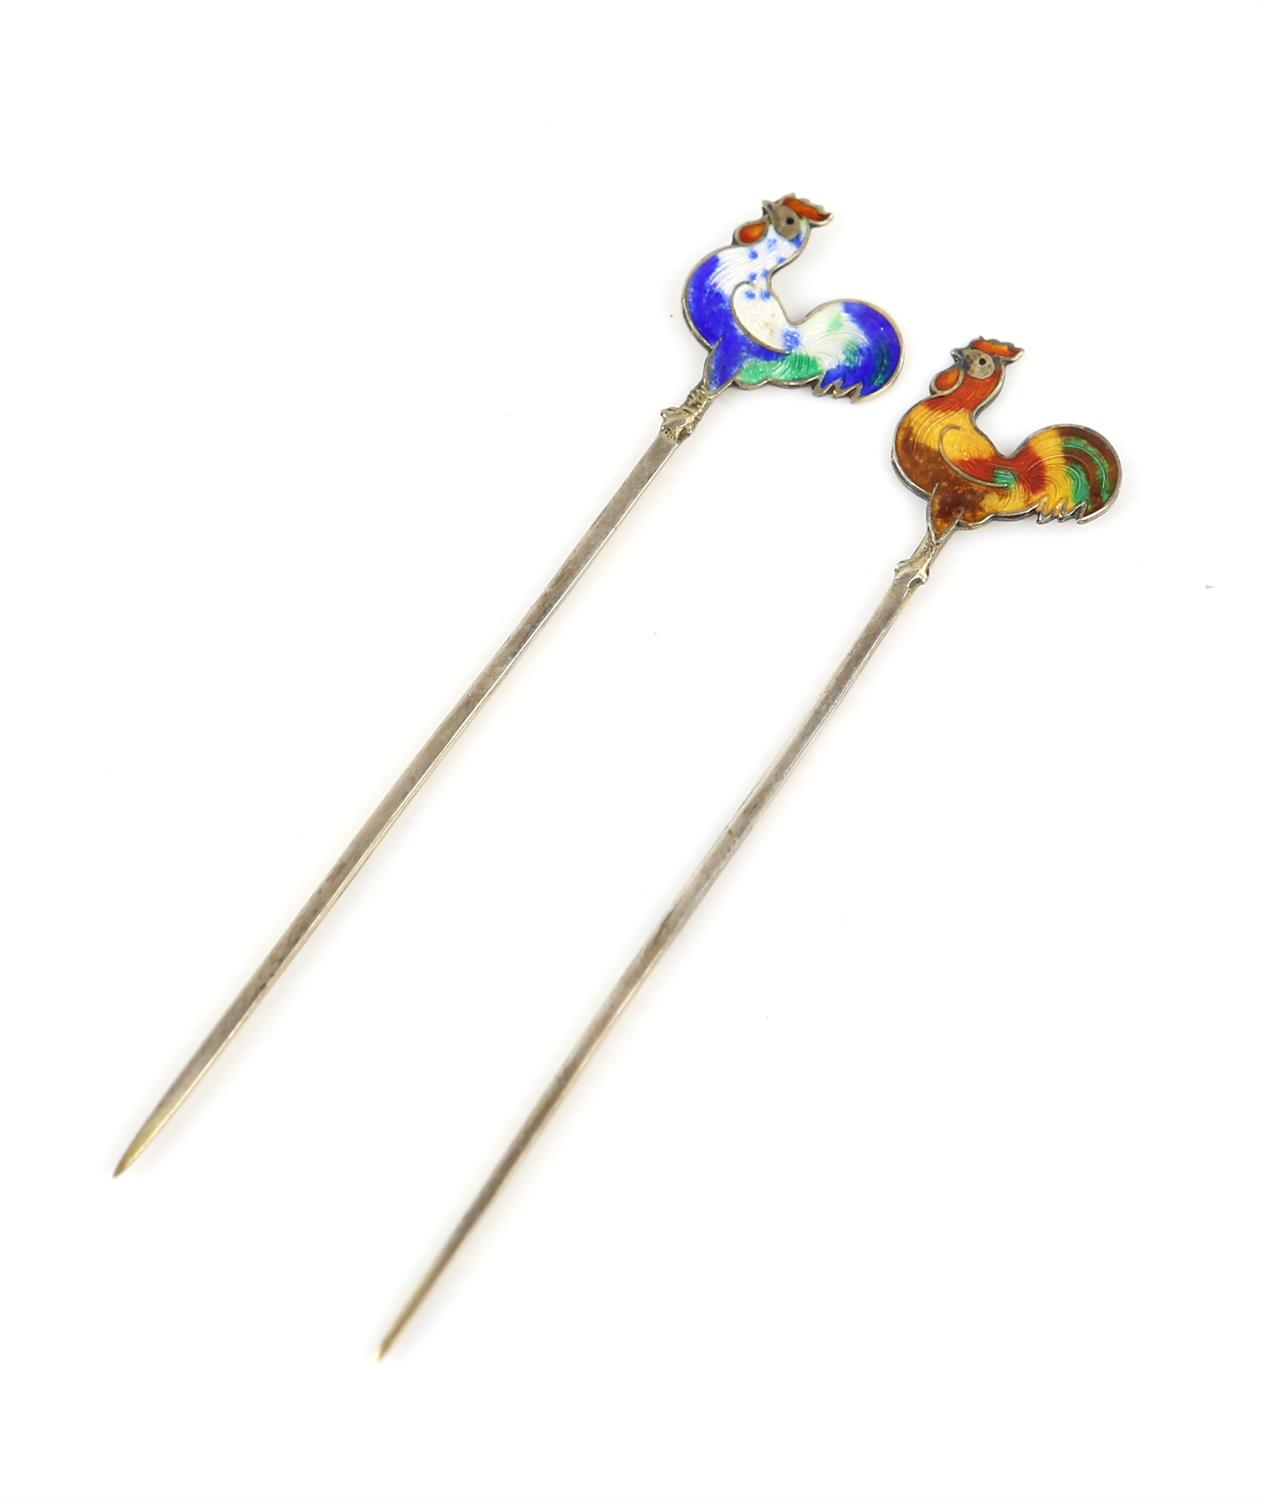 Cased set of silver and enamel cockerel cocktail sticks, each bird with individual enamel - Image 4 of 6